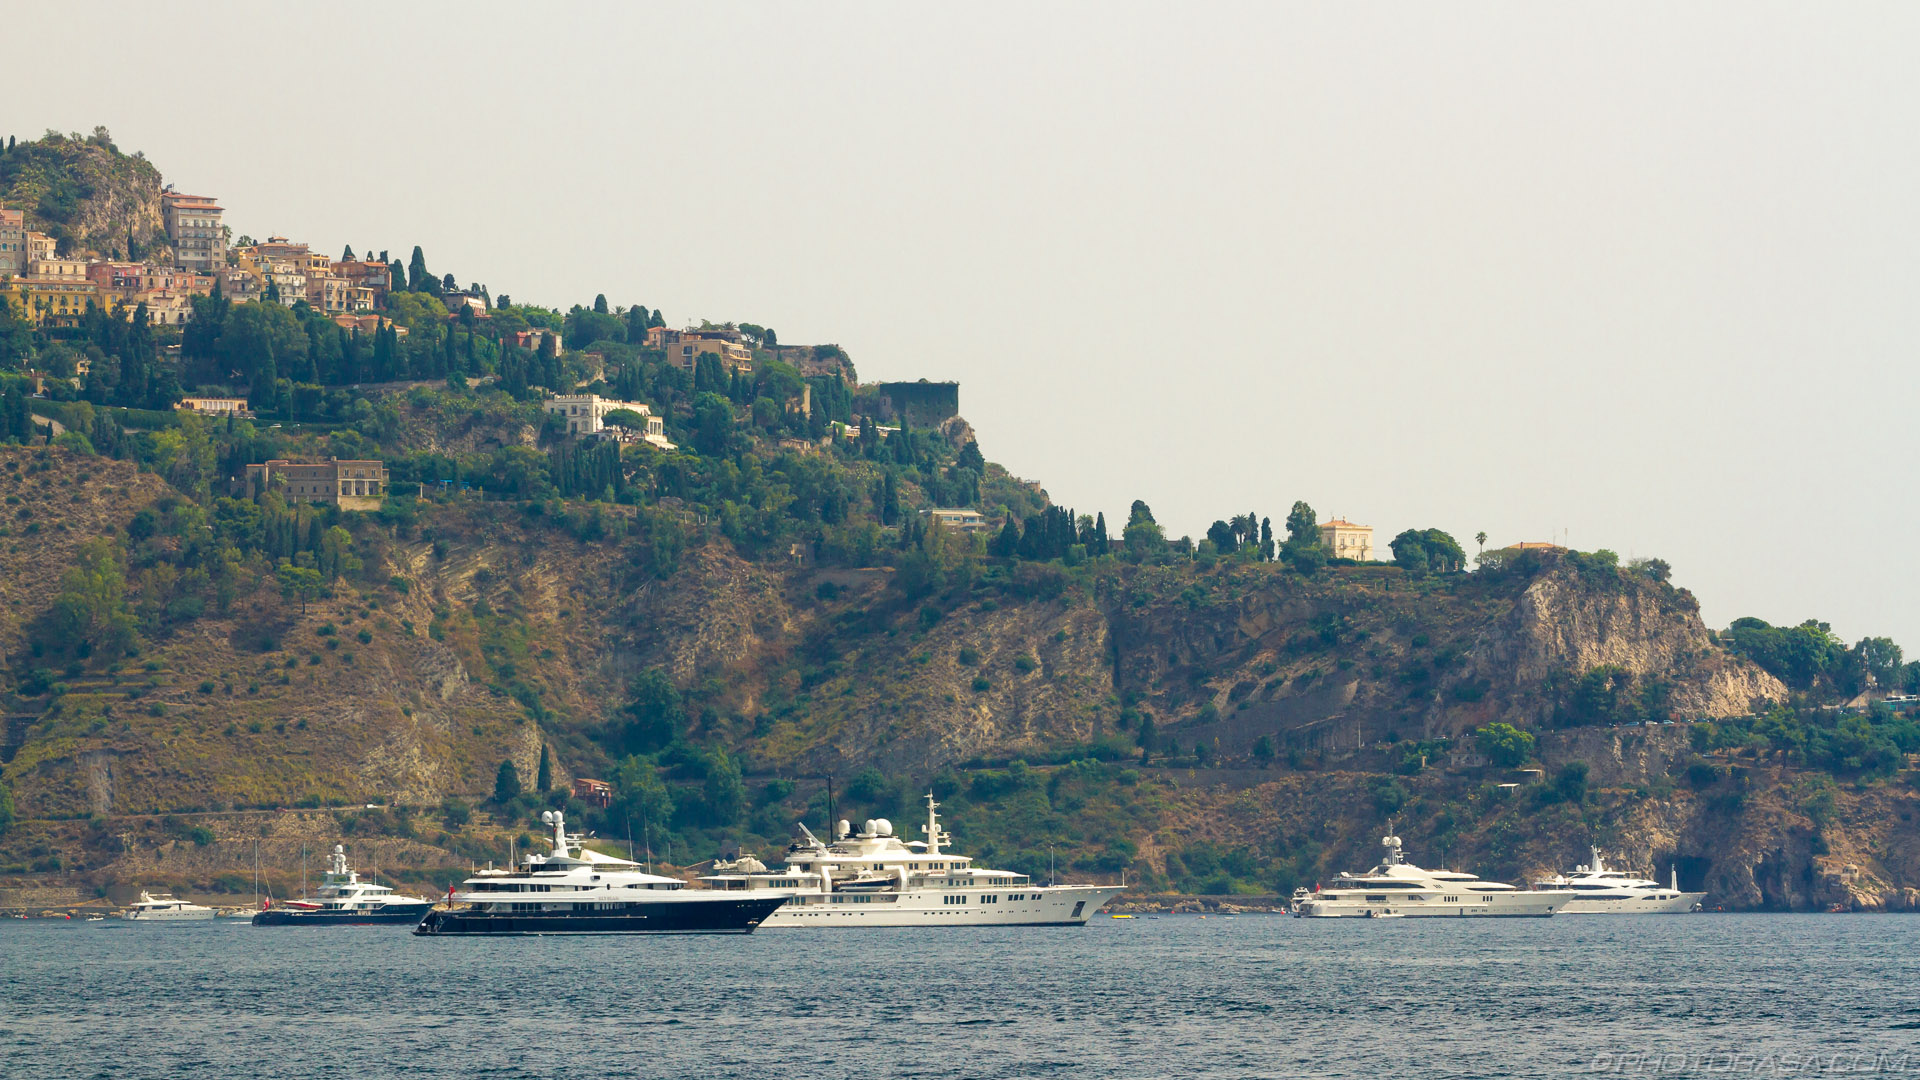 http://photorasa.com/giardini-naxos/group-of-super-yachts-near-giardini-naxos/